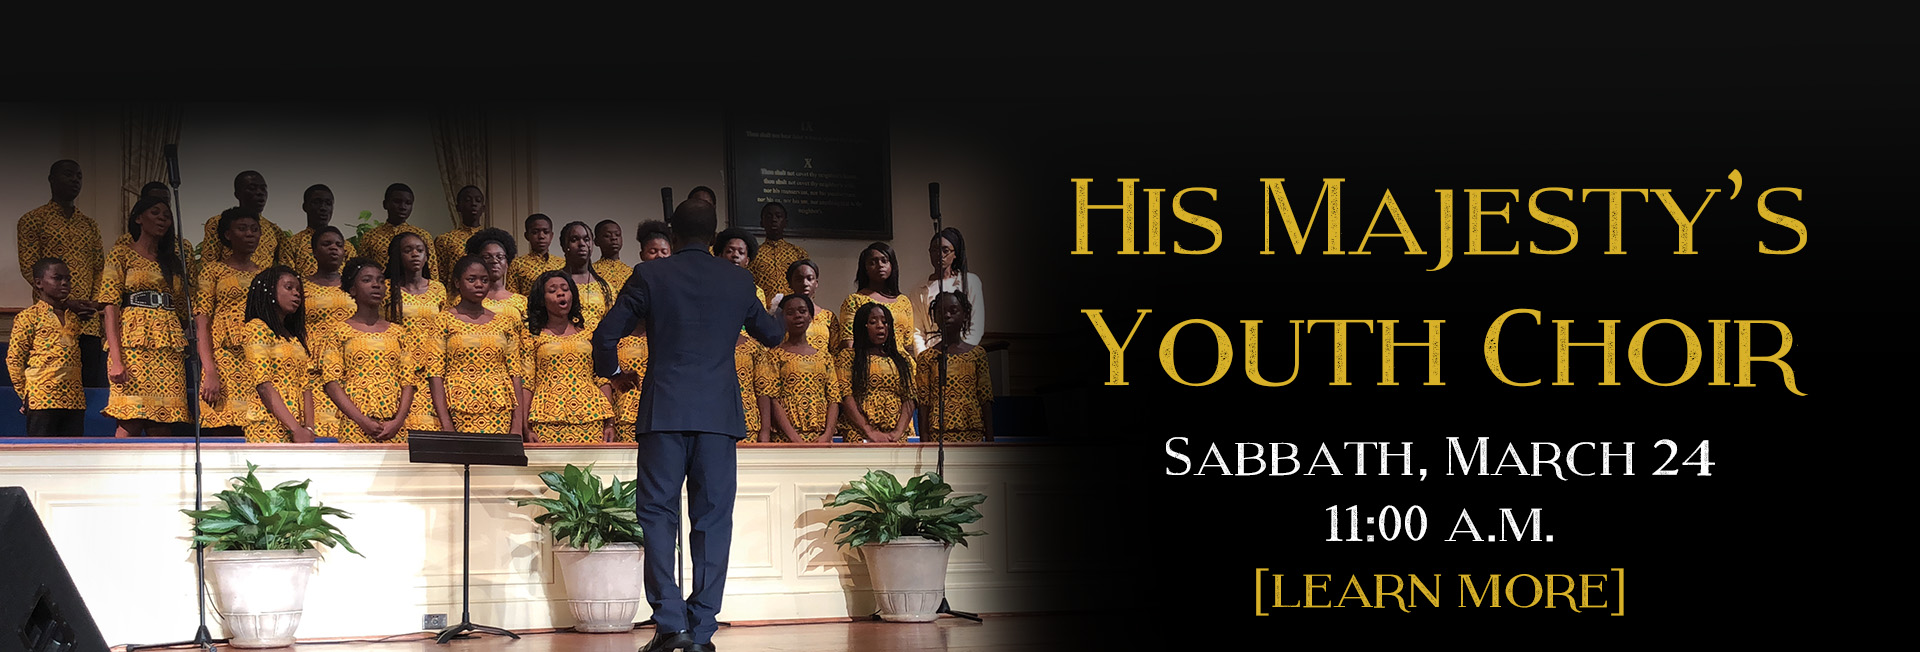 His Majesty's Youth Choir - Sabbath March 24 11 am